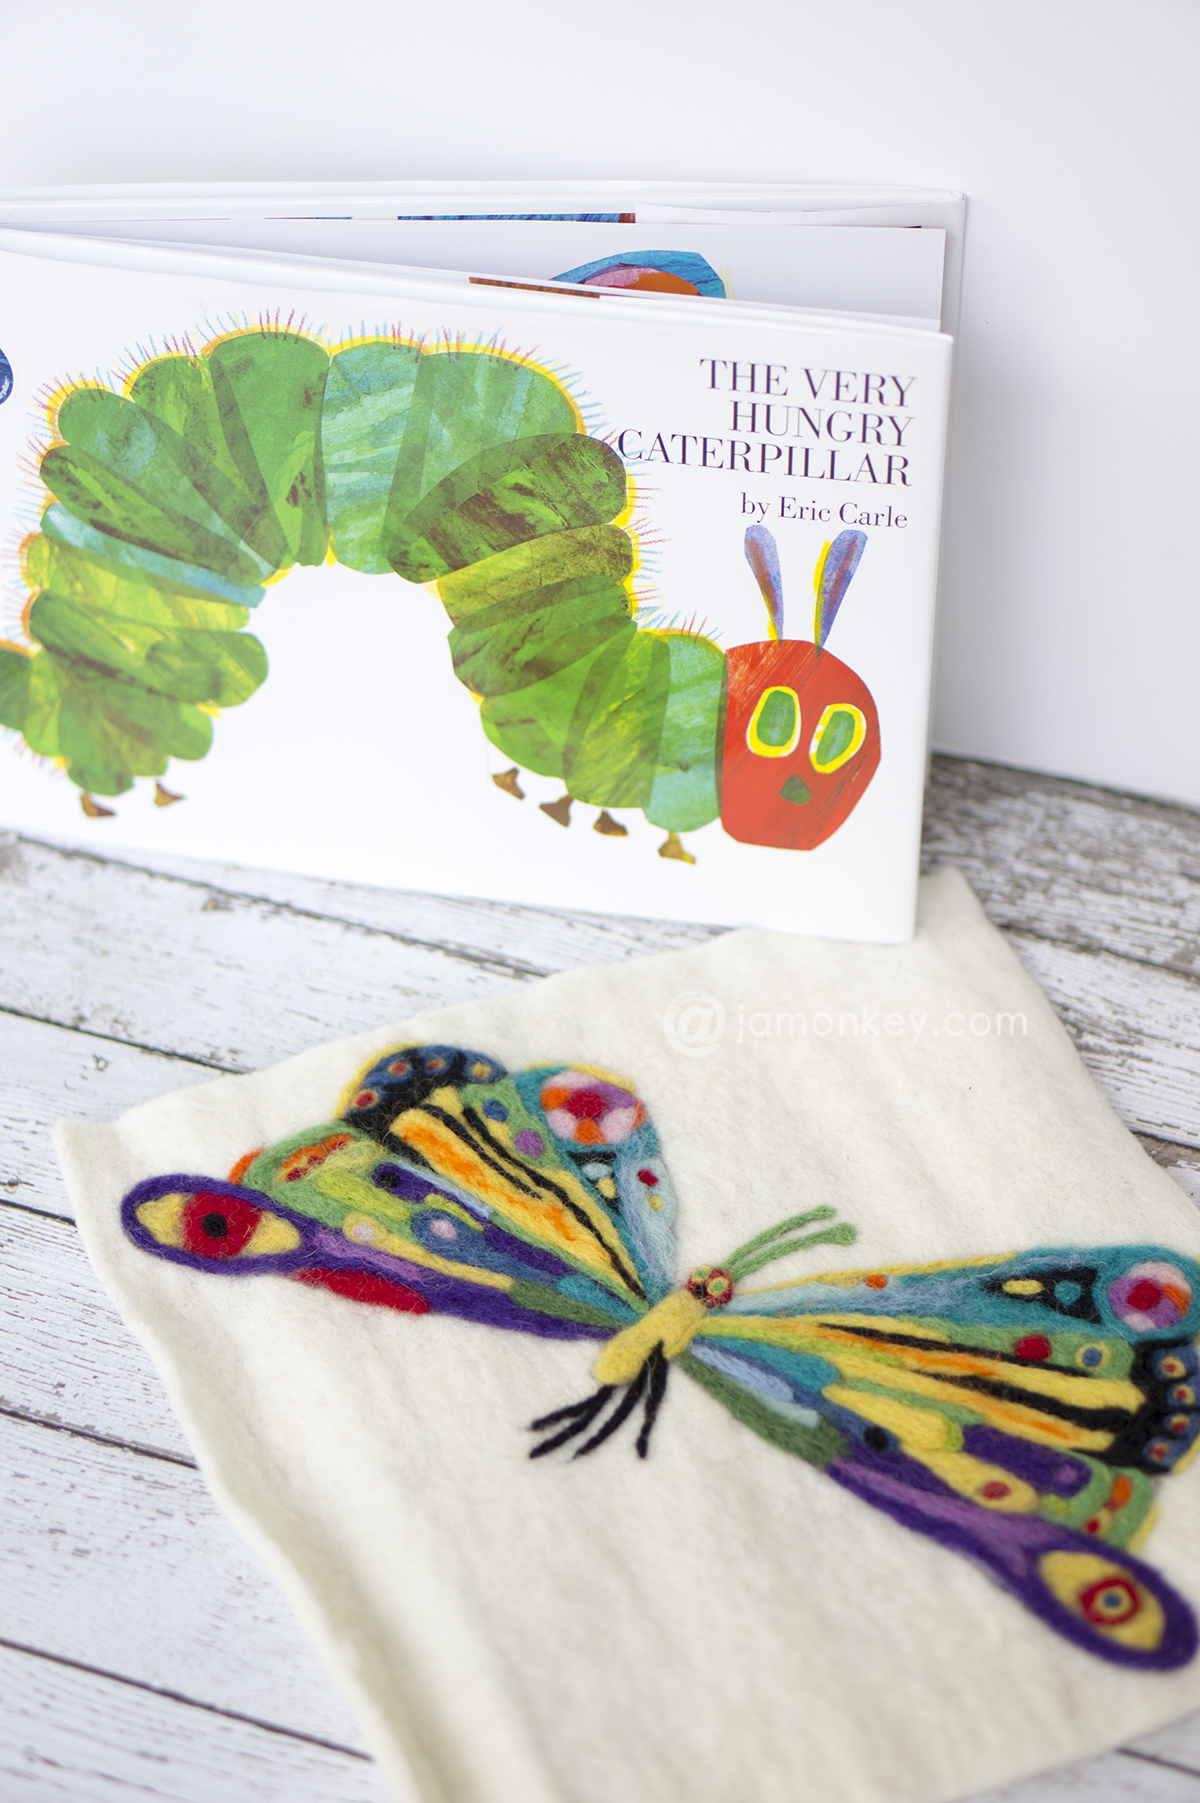 The Very Hungry Caterpillar - Needle Felting